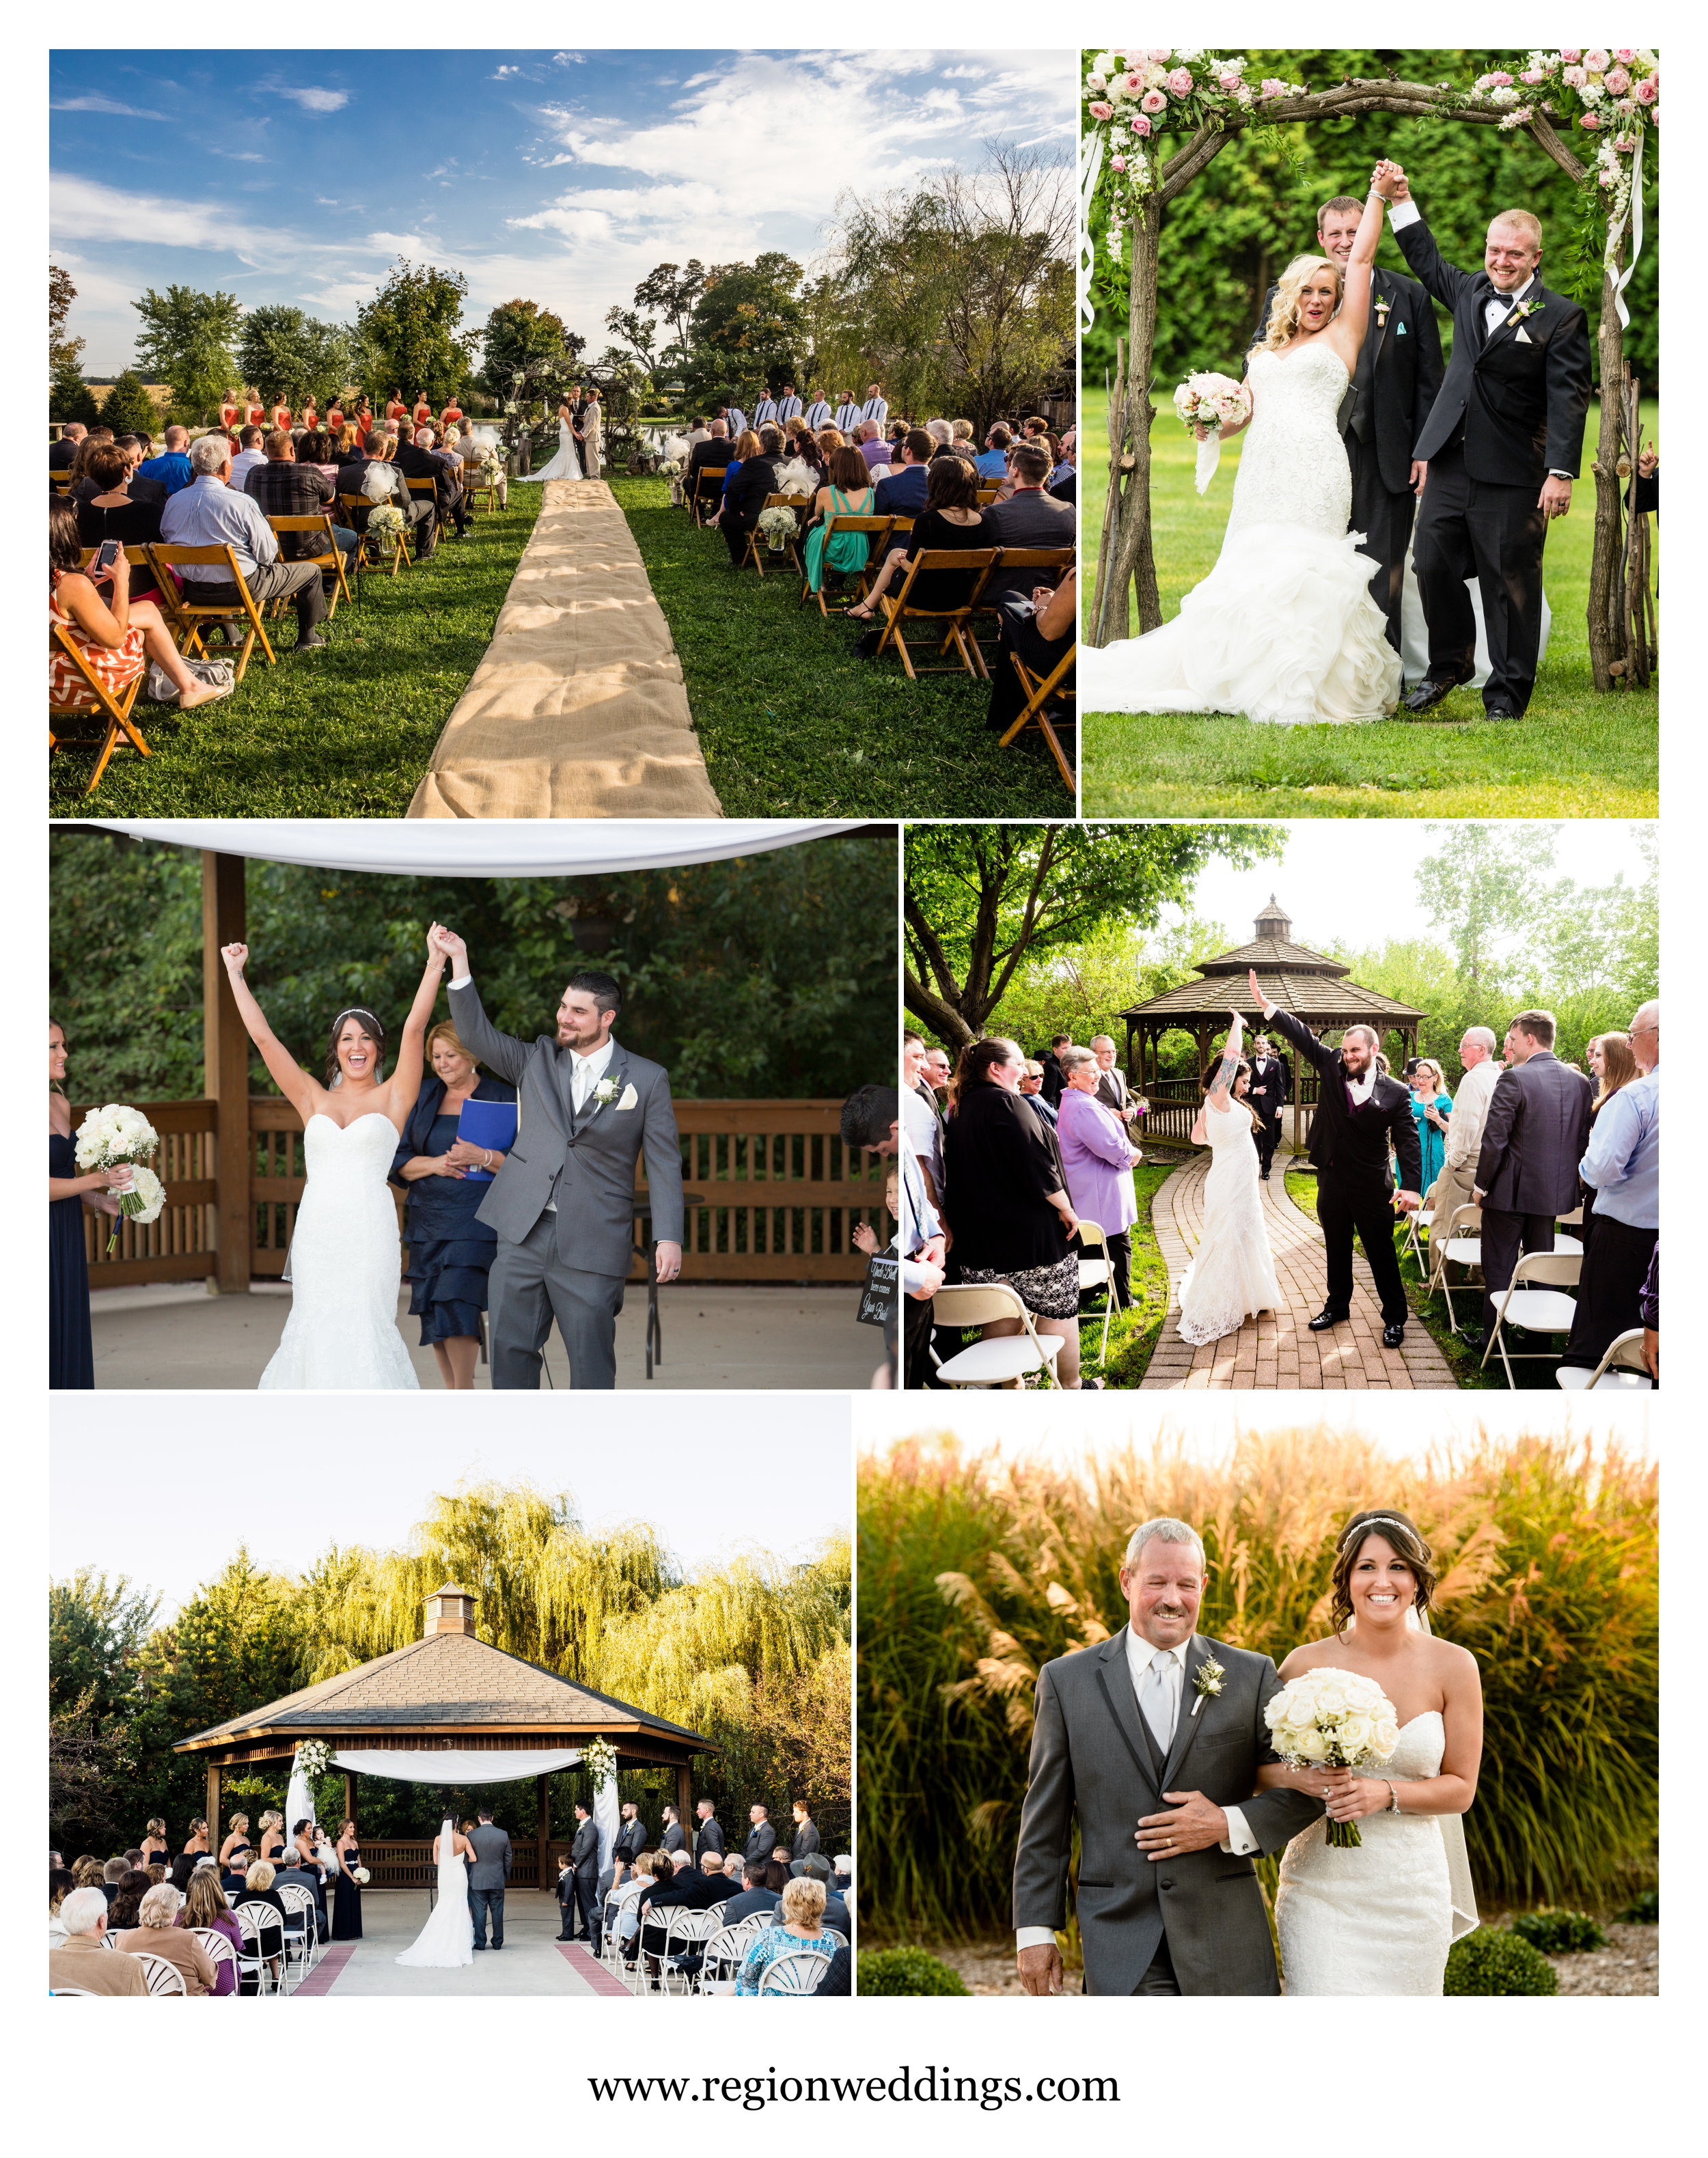 Outdoor wedding ceremonies in Northwest Indiana and Southwest Michigan.